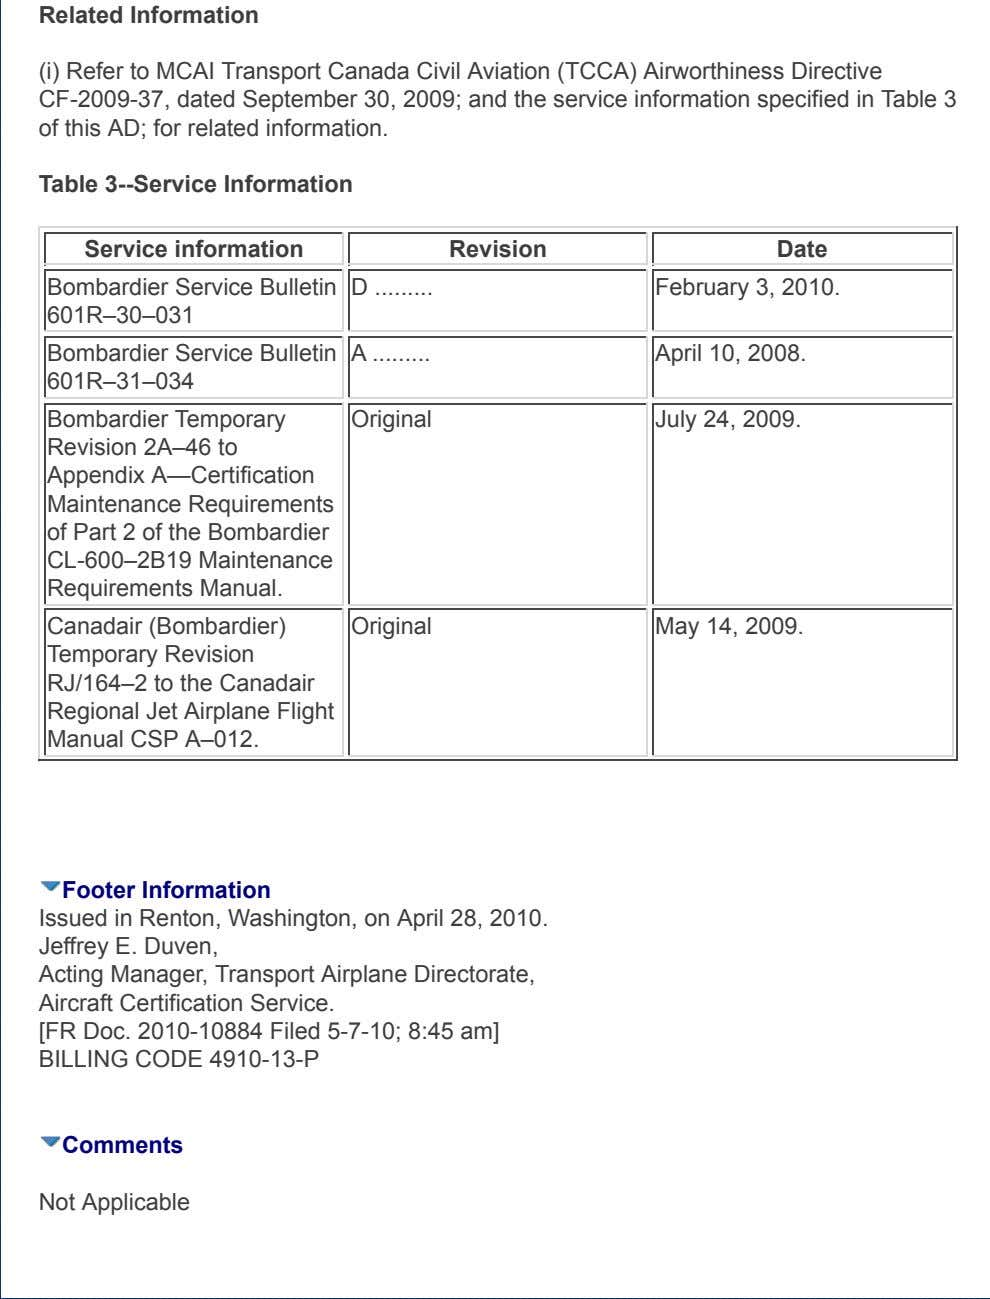 Related Information (i) Refer to MCAI Transport Canada Civil Aviation (TCCA) Airworthiness Directive CF-2009-37, dated